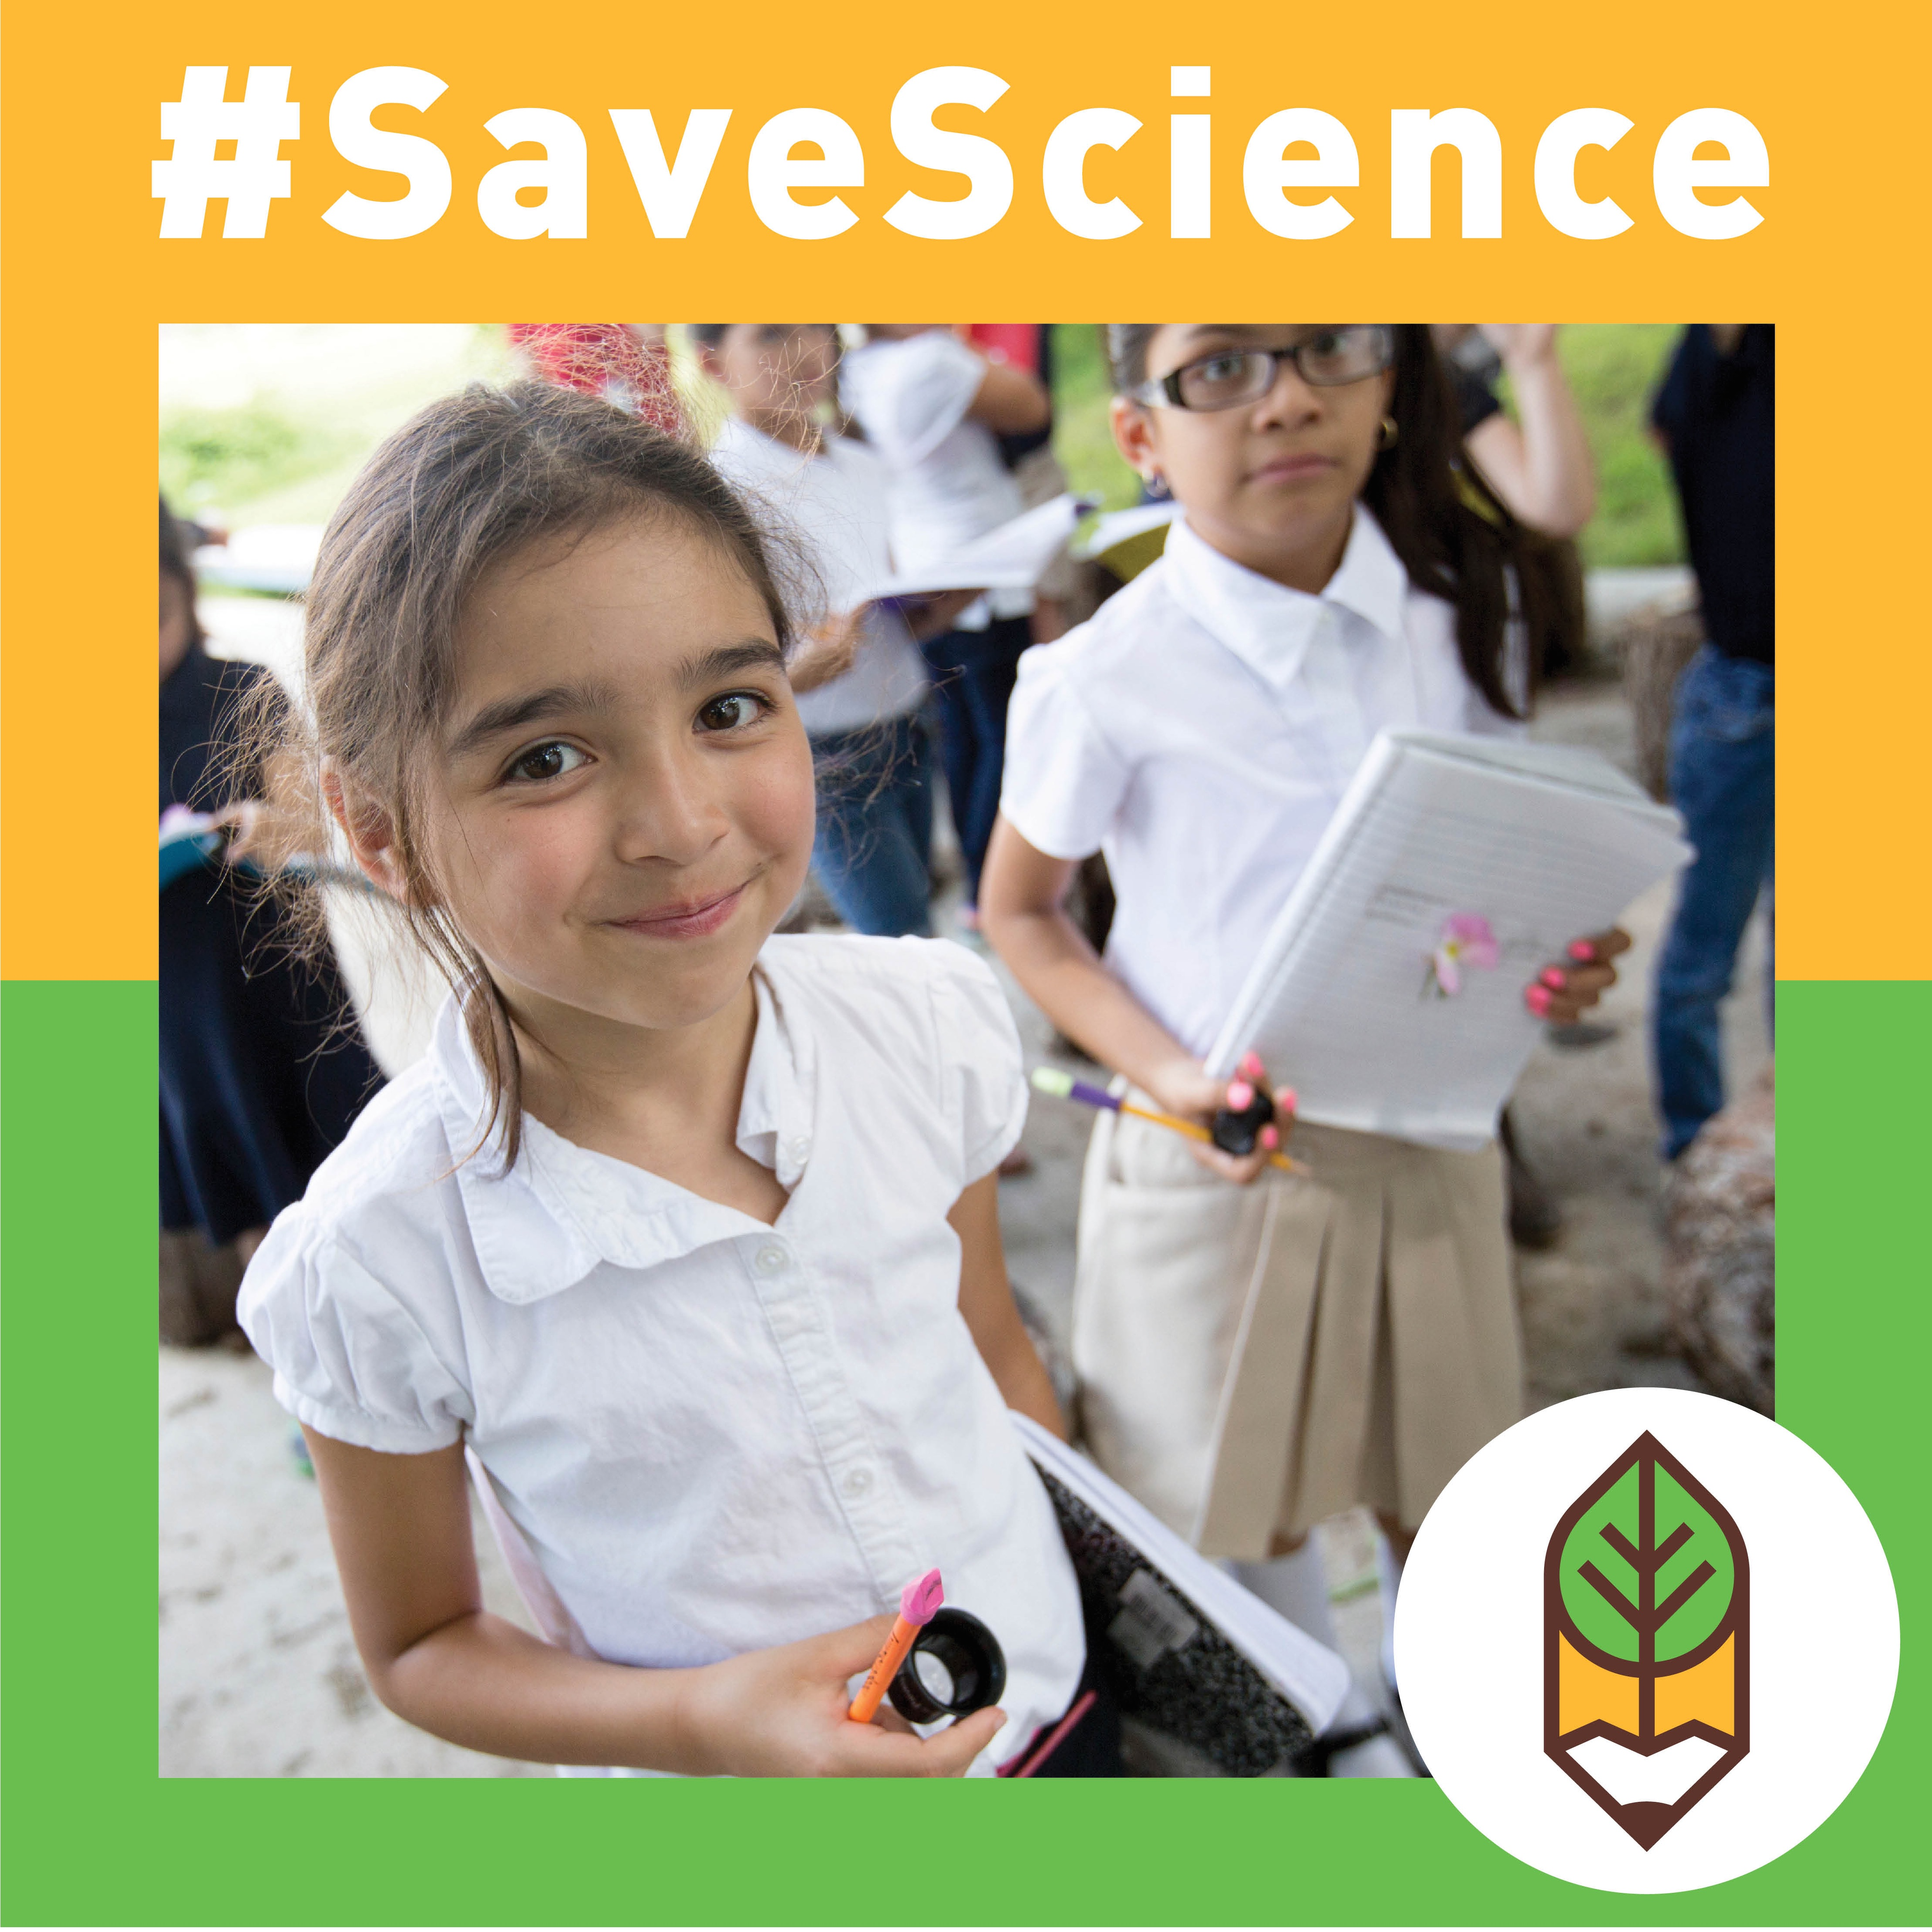 savescience_kids_19